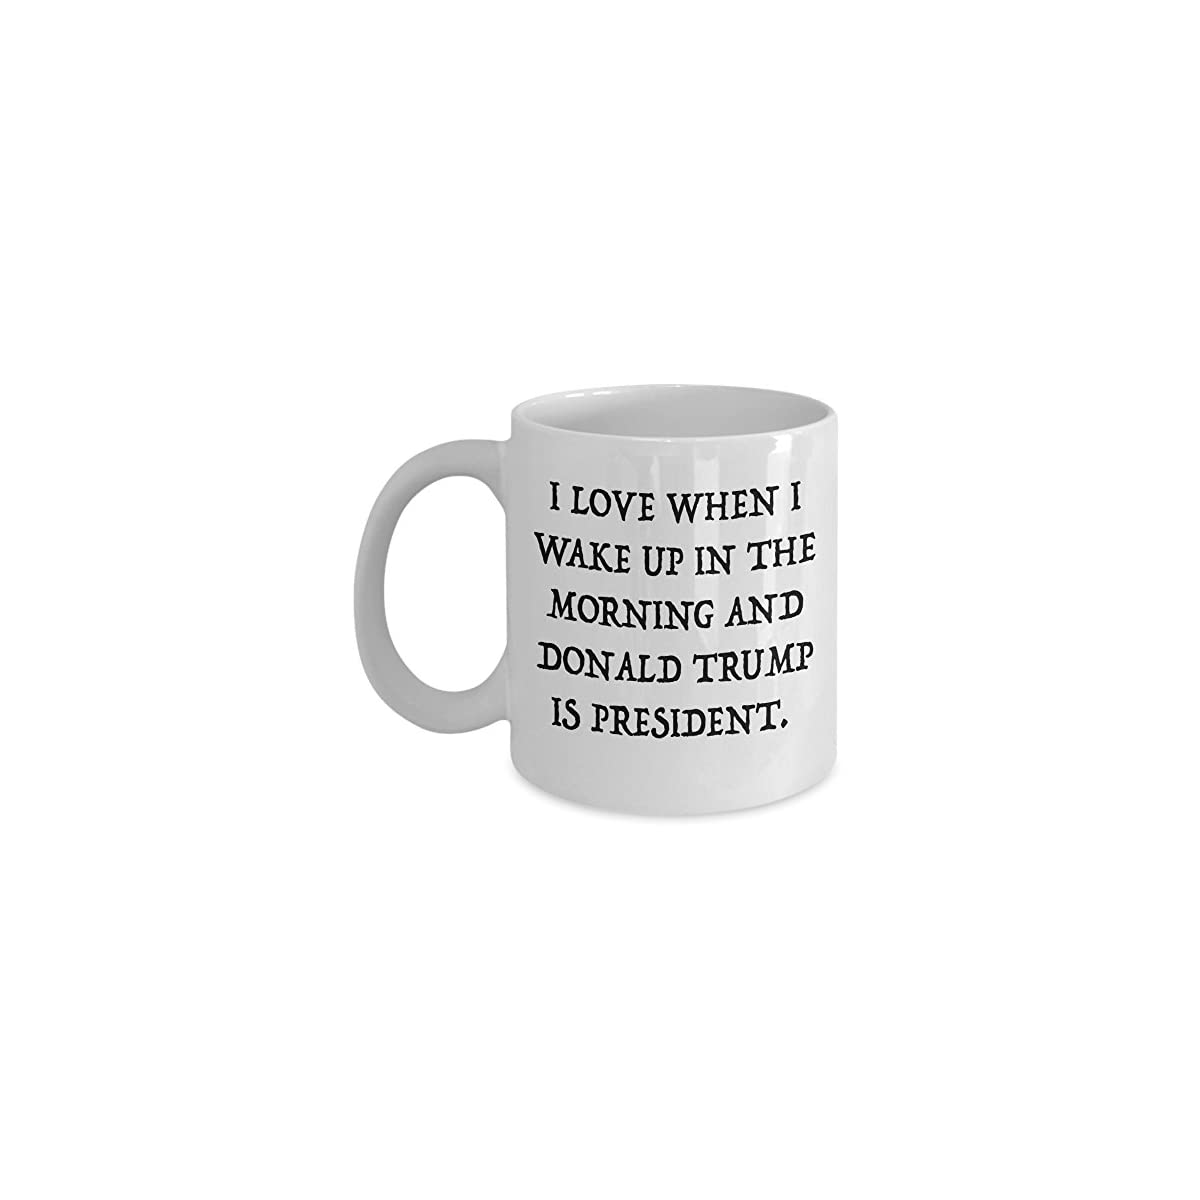 I Love When I Wake Up In The Morning And Donald Trump Is President Coffee Mug – Proud MAGA Republican, Conservative Gift For Him and Her – Funny POTUS Political Novelty Ceramic Cup – By MyCuppaJoy